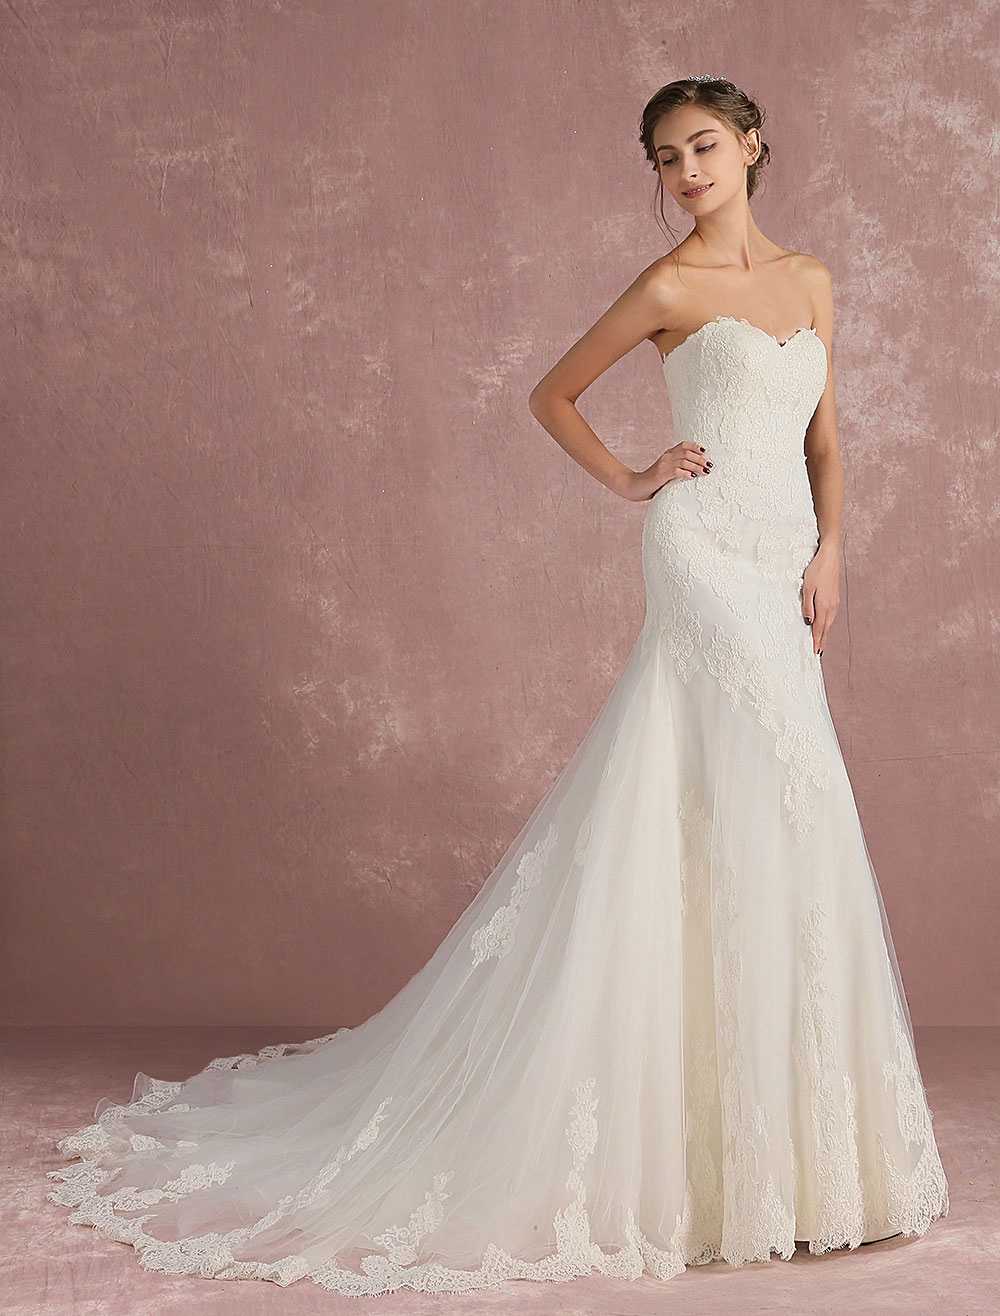 Mermaid Wedding Dress Sweetheart Strapless Bridal Dress Backless Ivory Lace Applique Tulle Luxury Bridal Gown With Train